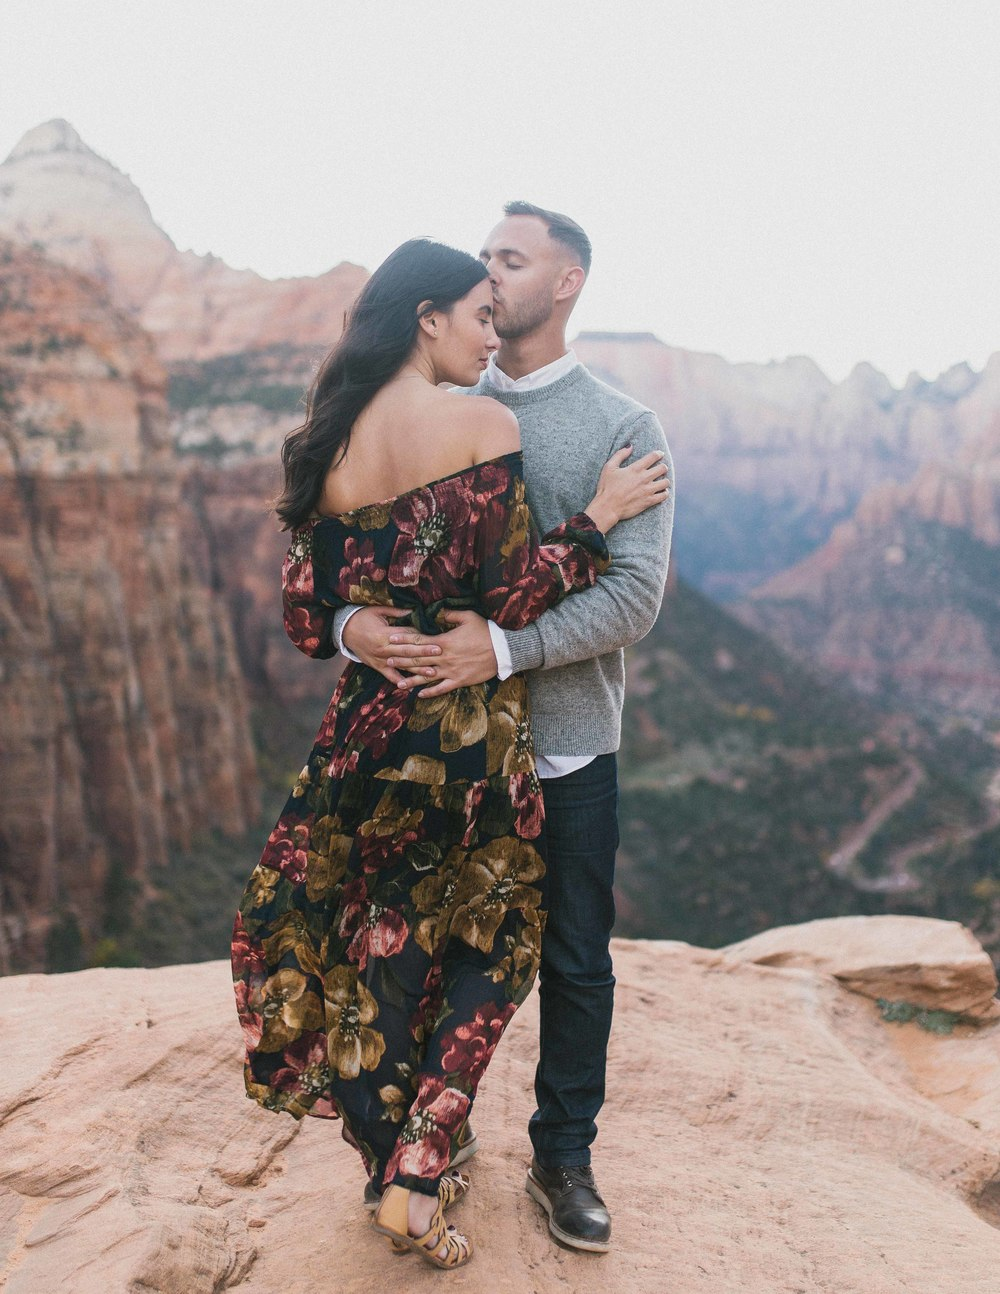 Zion-Utah-Engagement-Photographer-19.jpg